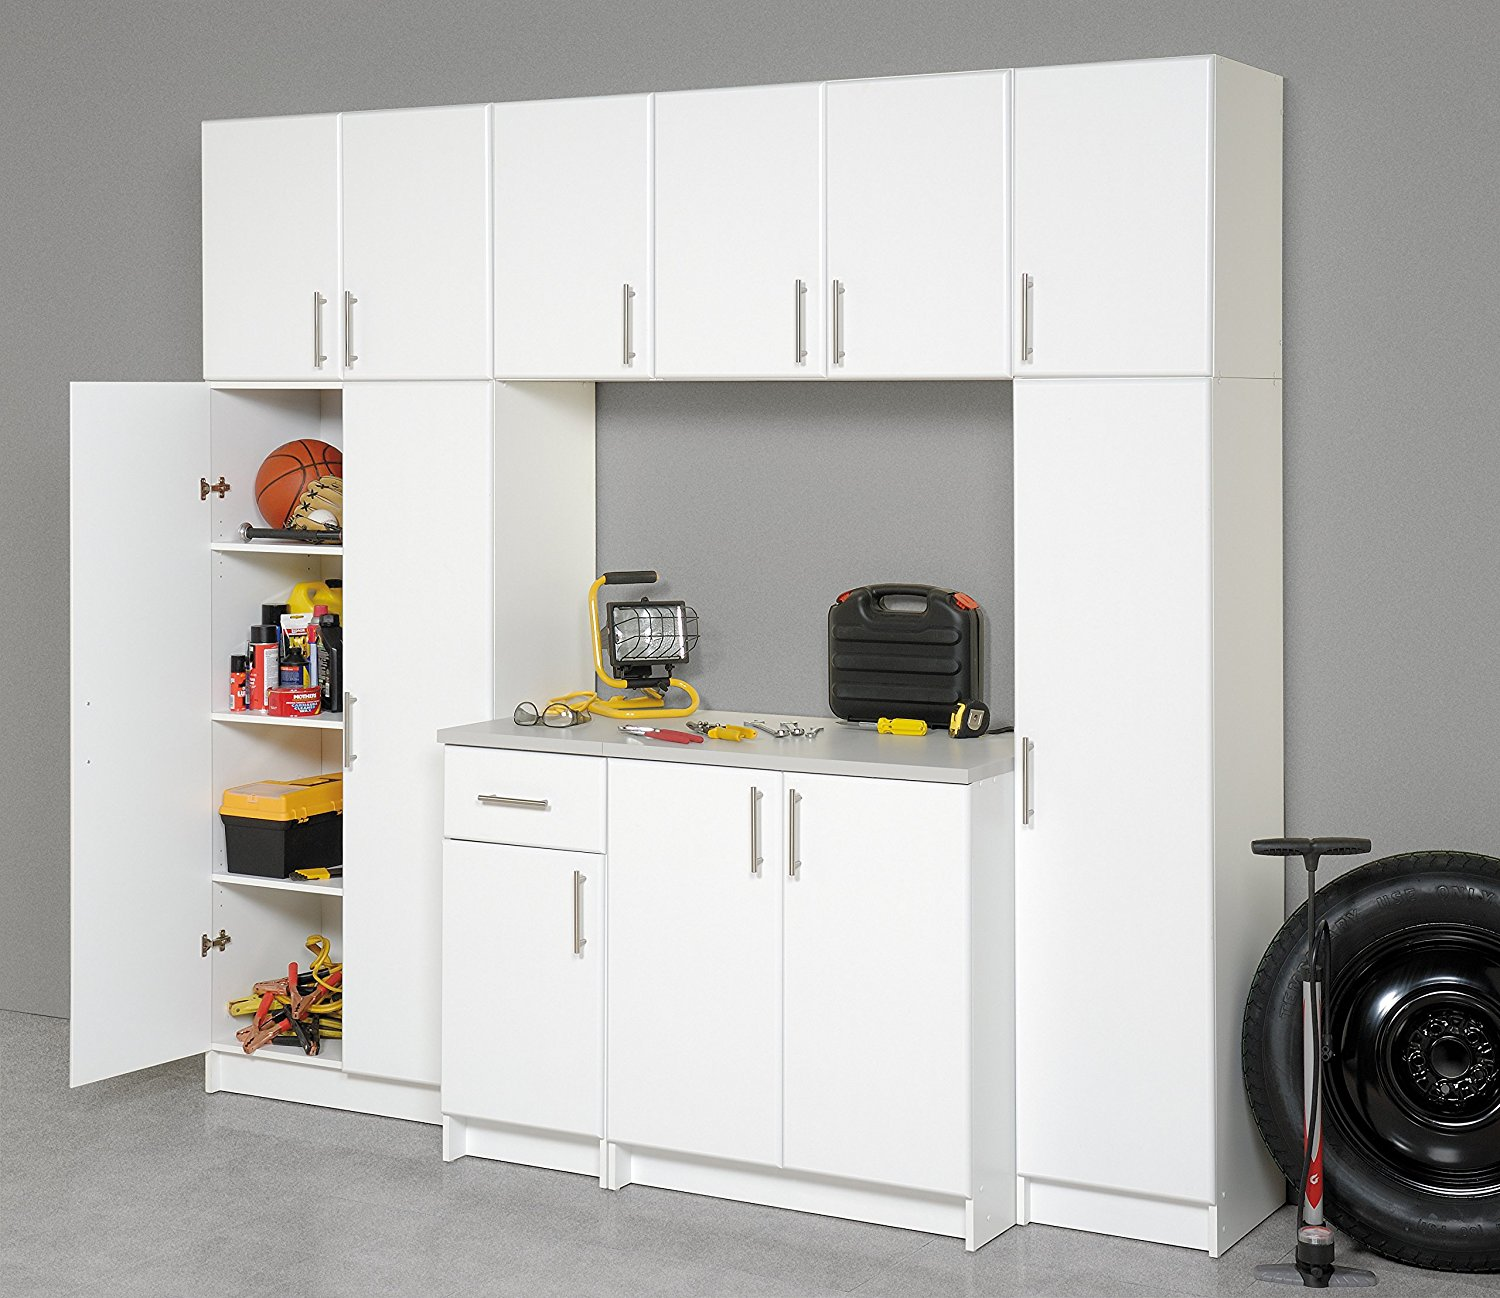 12 Inch Deep Pantry Cabinet